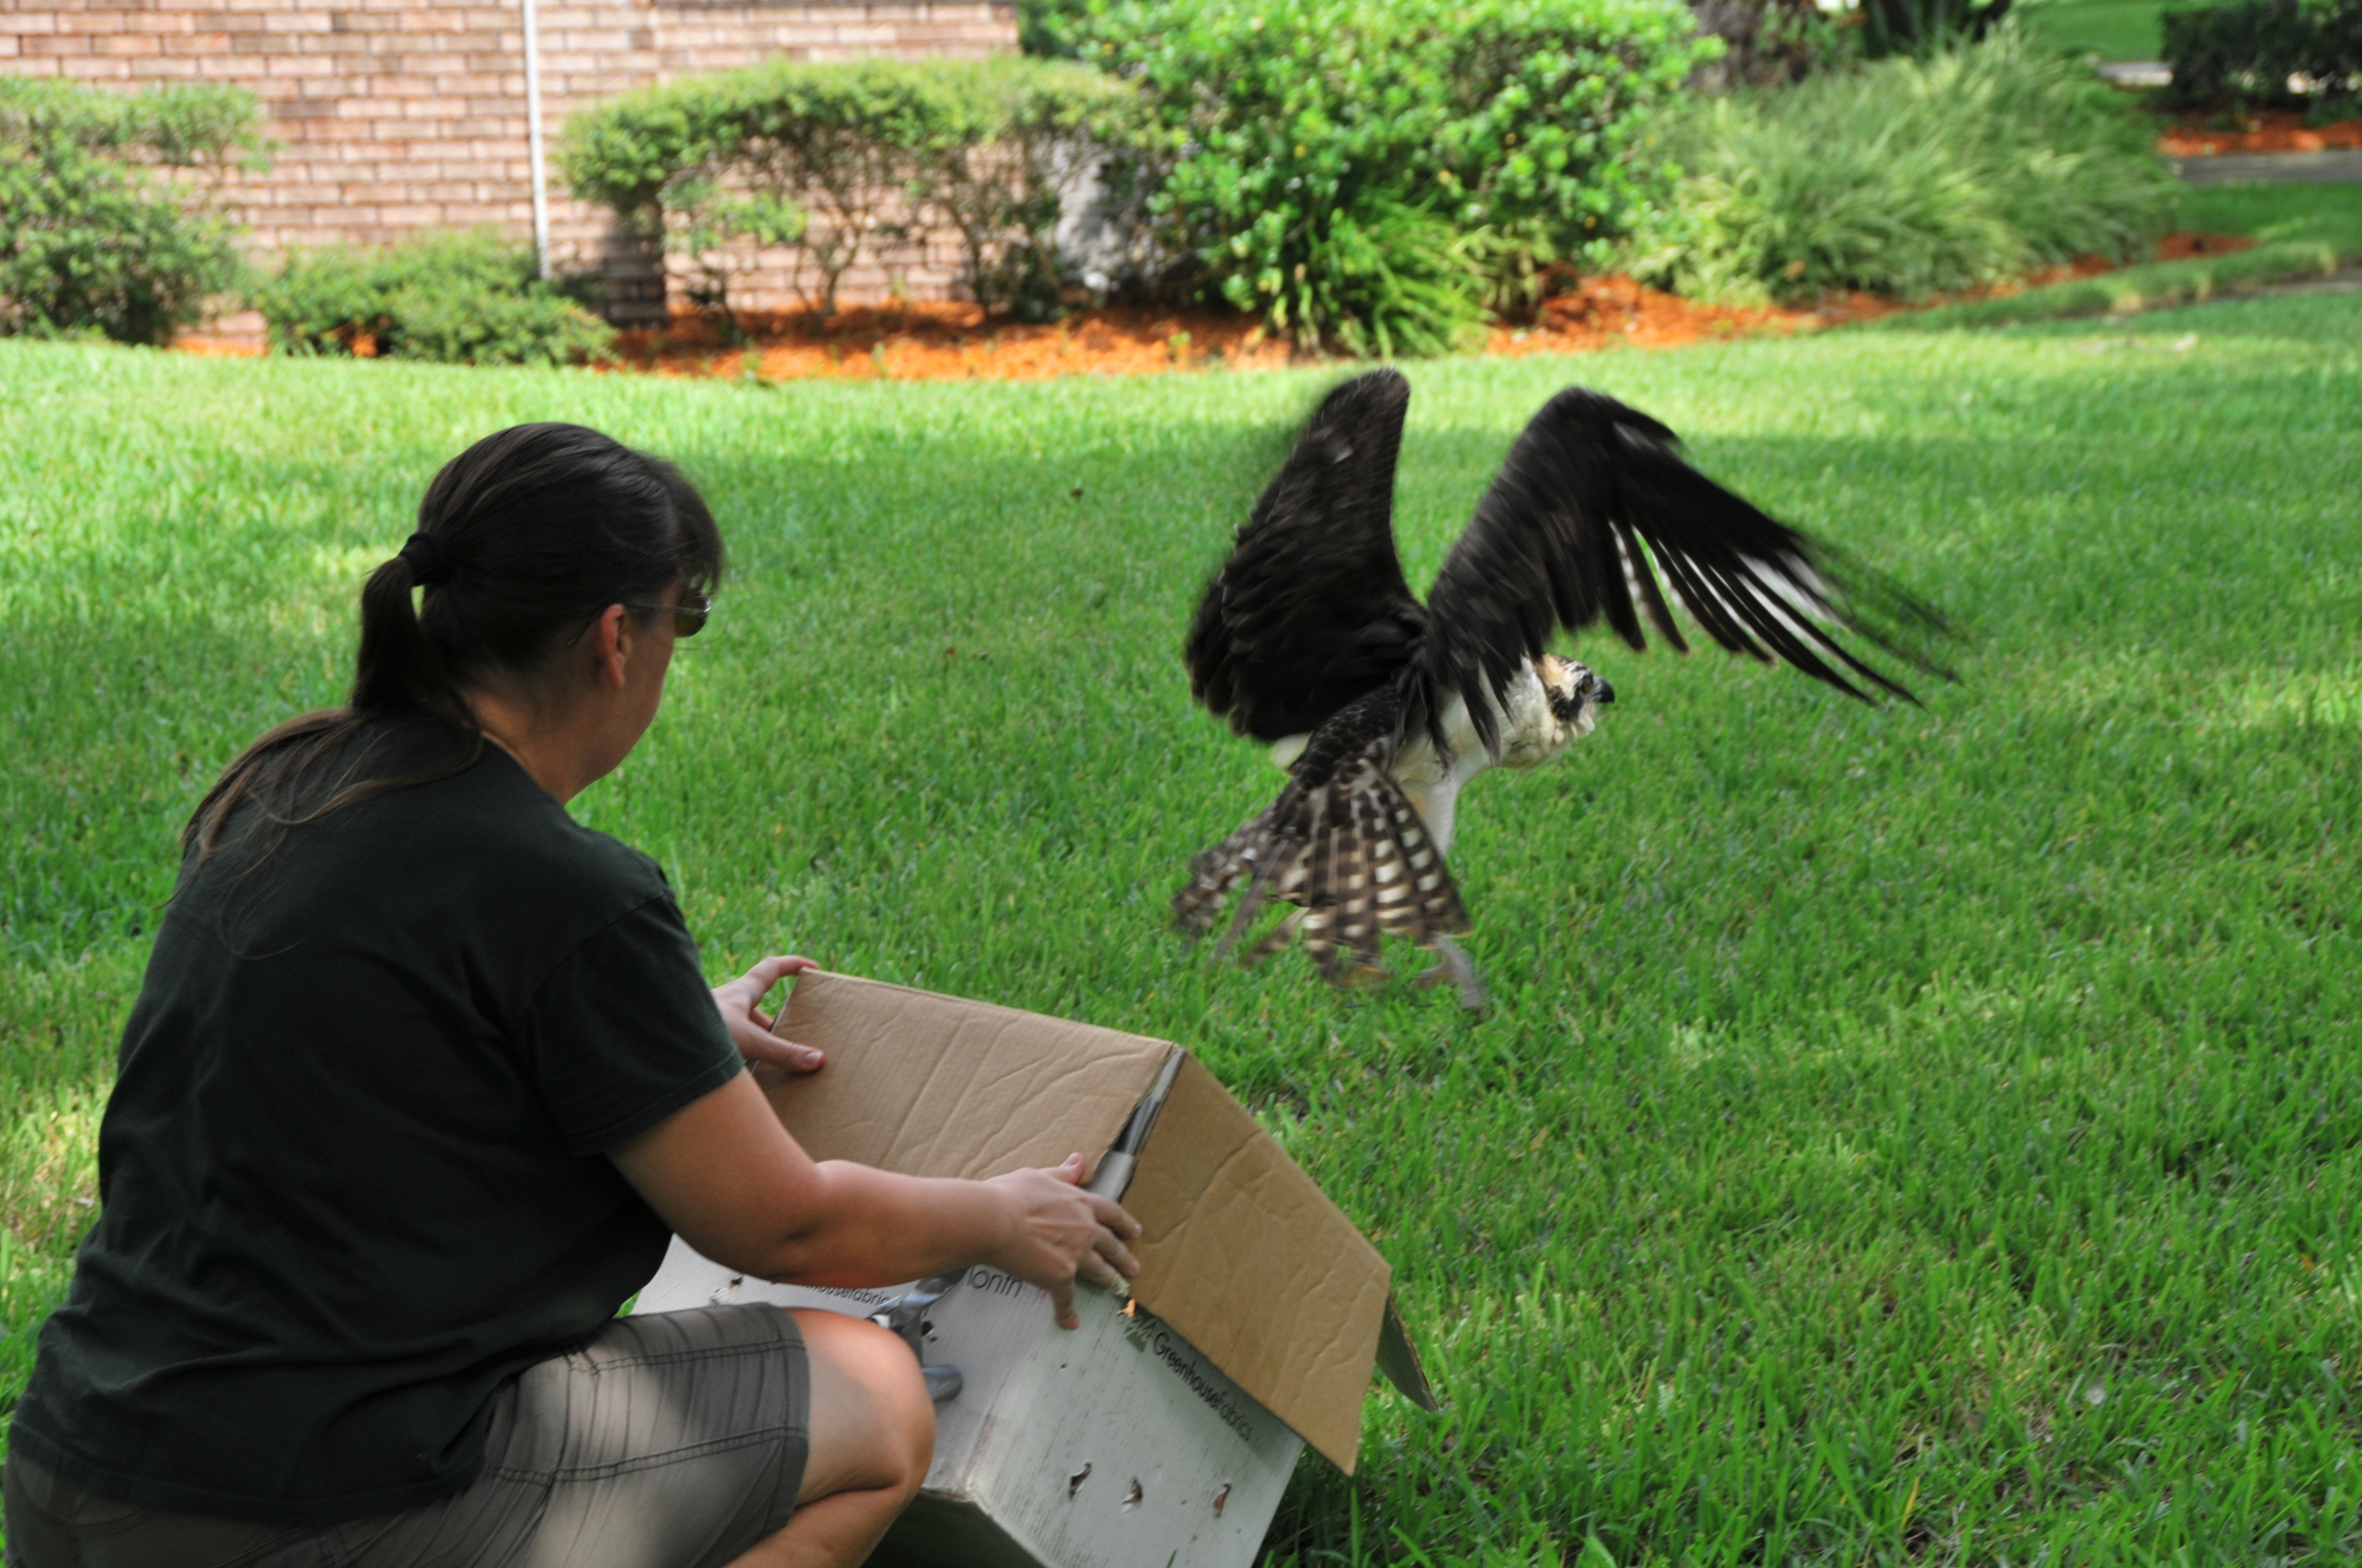 A volunteer from the Audobon Center for Birds of Prey in Maitland releases an osprey rescued by the author in Cocoa Beach last month. Photo by tedlund.com.